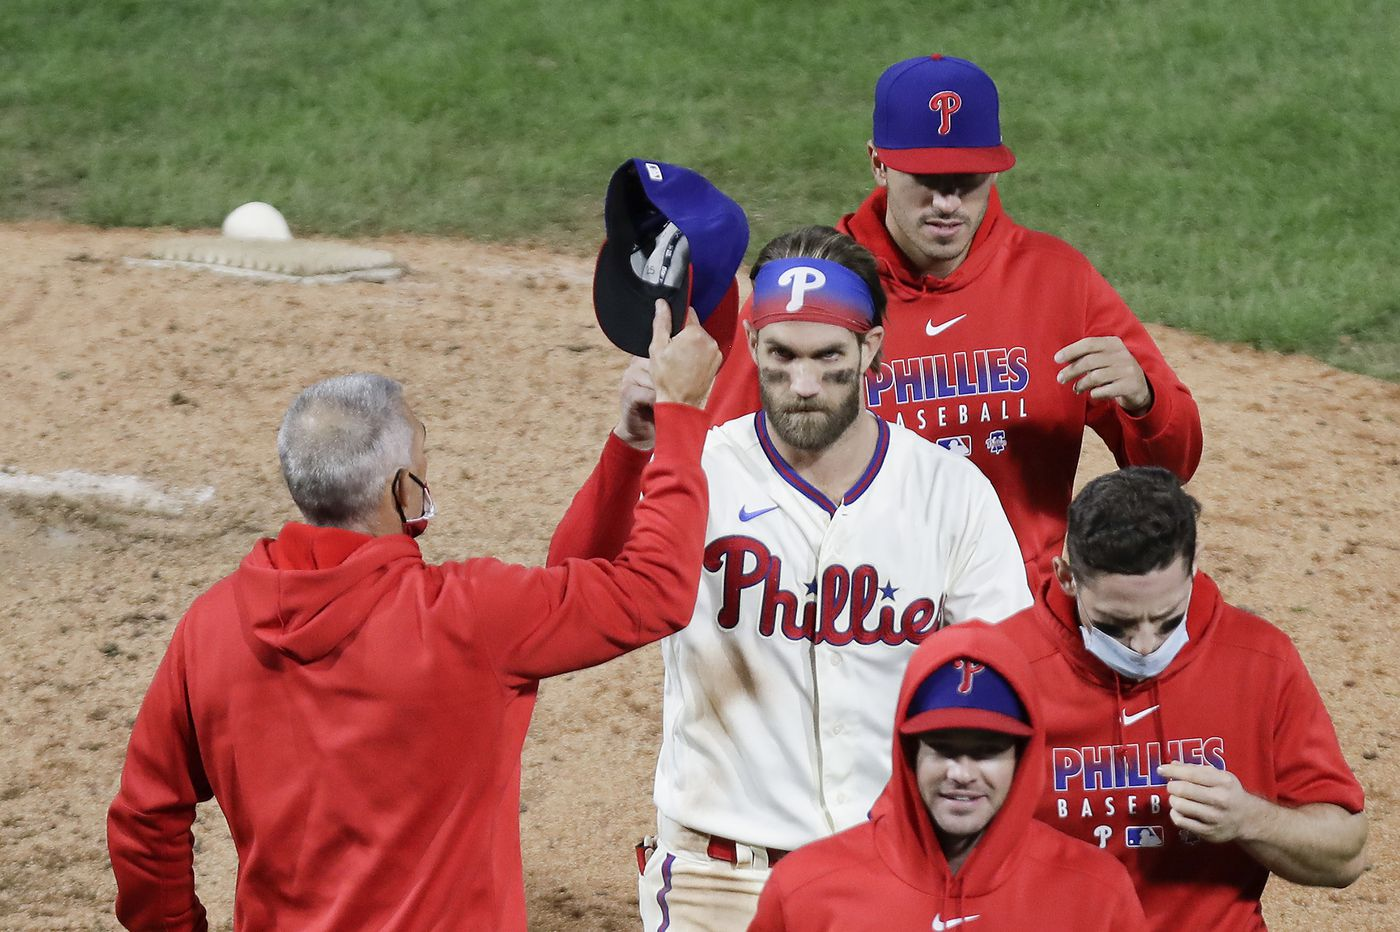 The Phillies must beat Tampa Bay's deep pitching to punch playoff ticket | Extra Innings